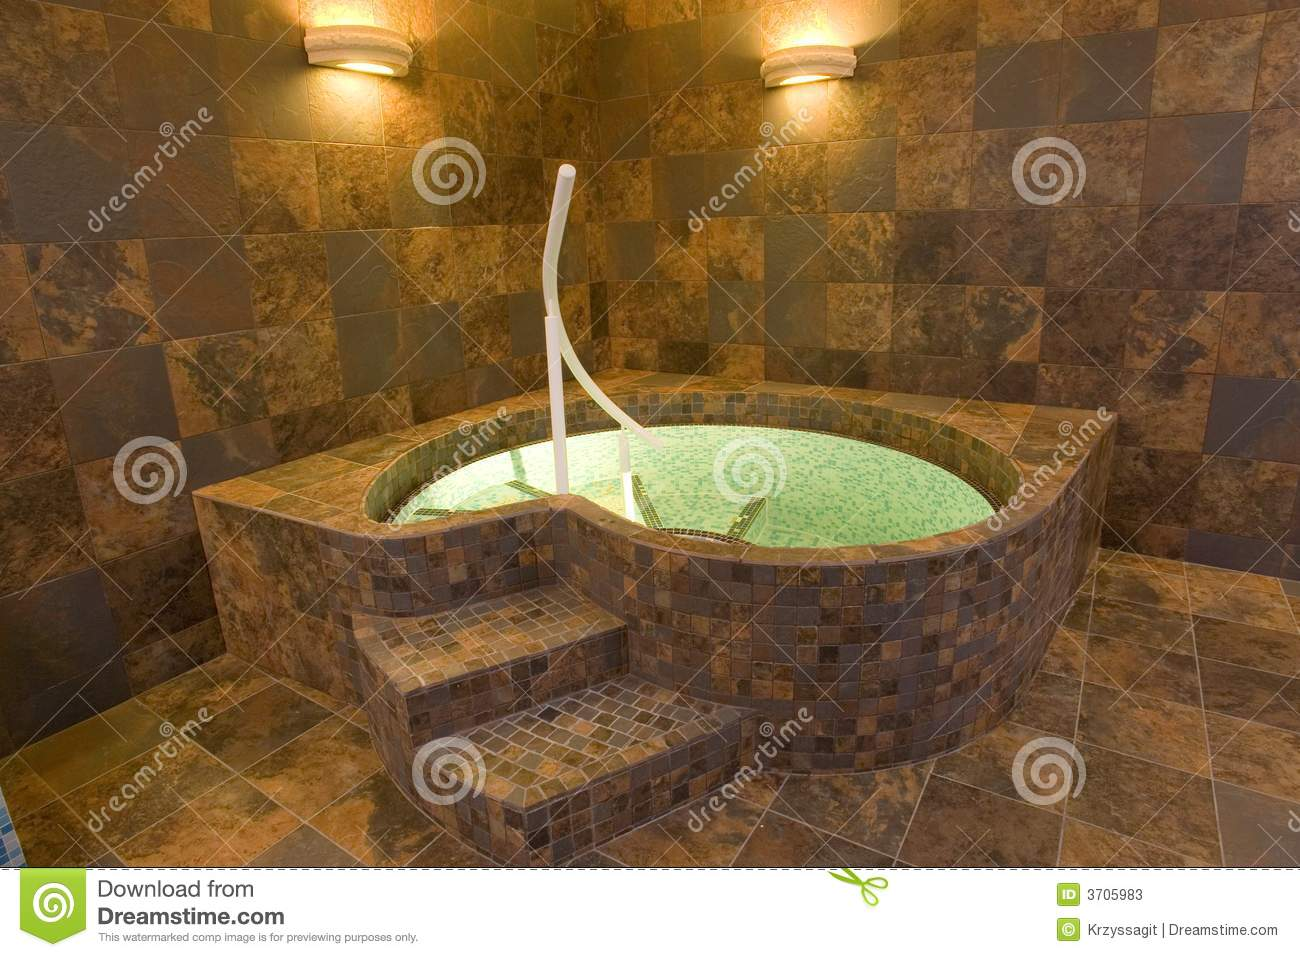 Jacuzzi Pool De Indoor Jacuzzi Pool Stock Image Image Of Decor Posh 3705983